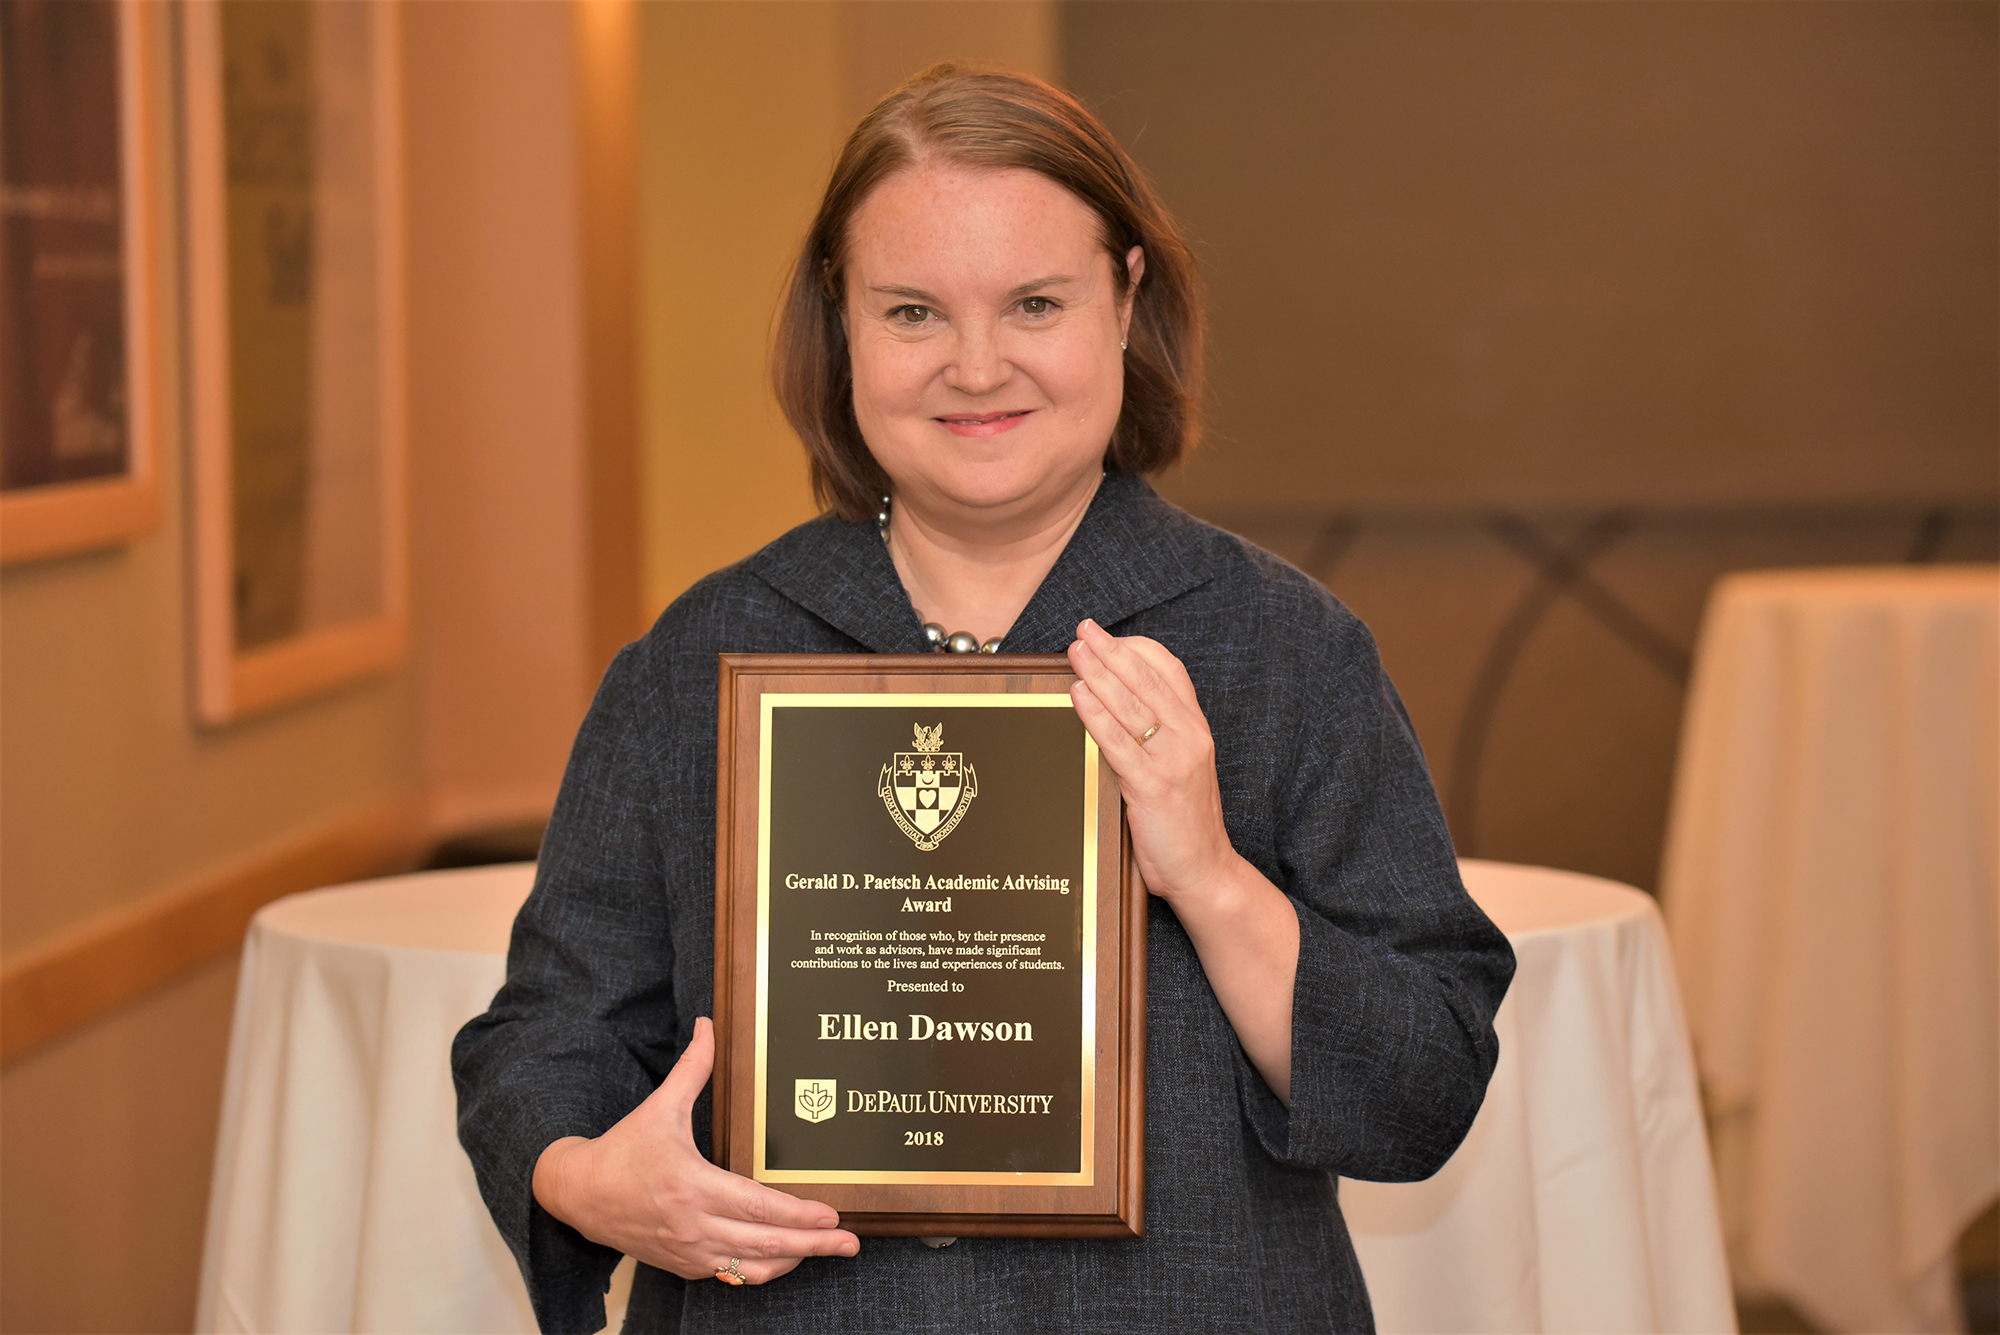 Kellstadt Advisor Ellen Dawson honored with Gerald D. Paetsch Academic Advising Award